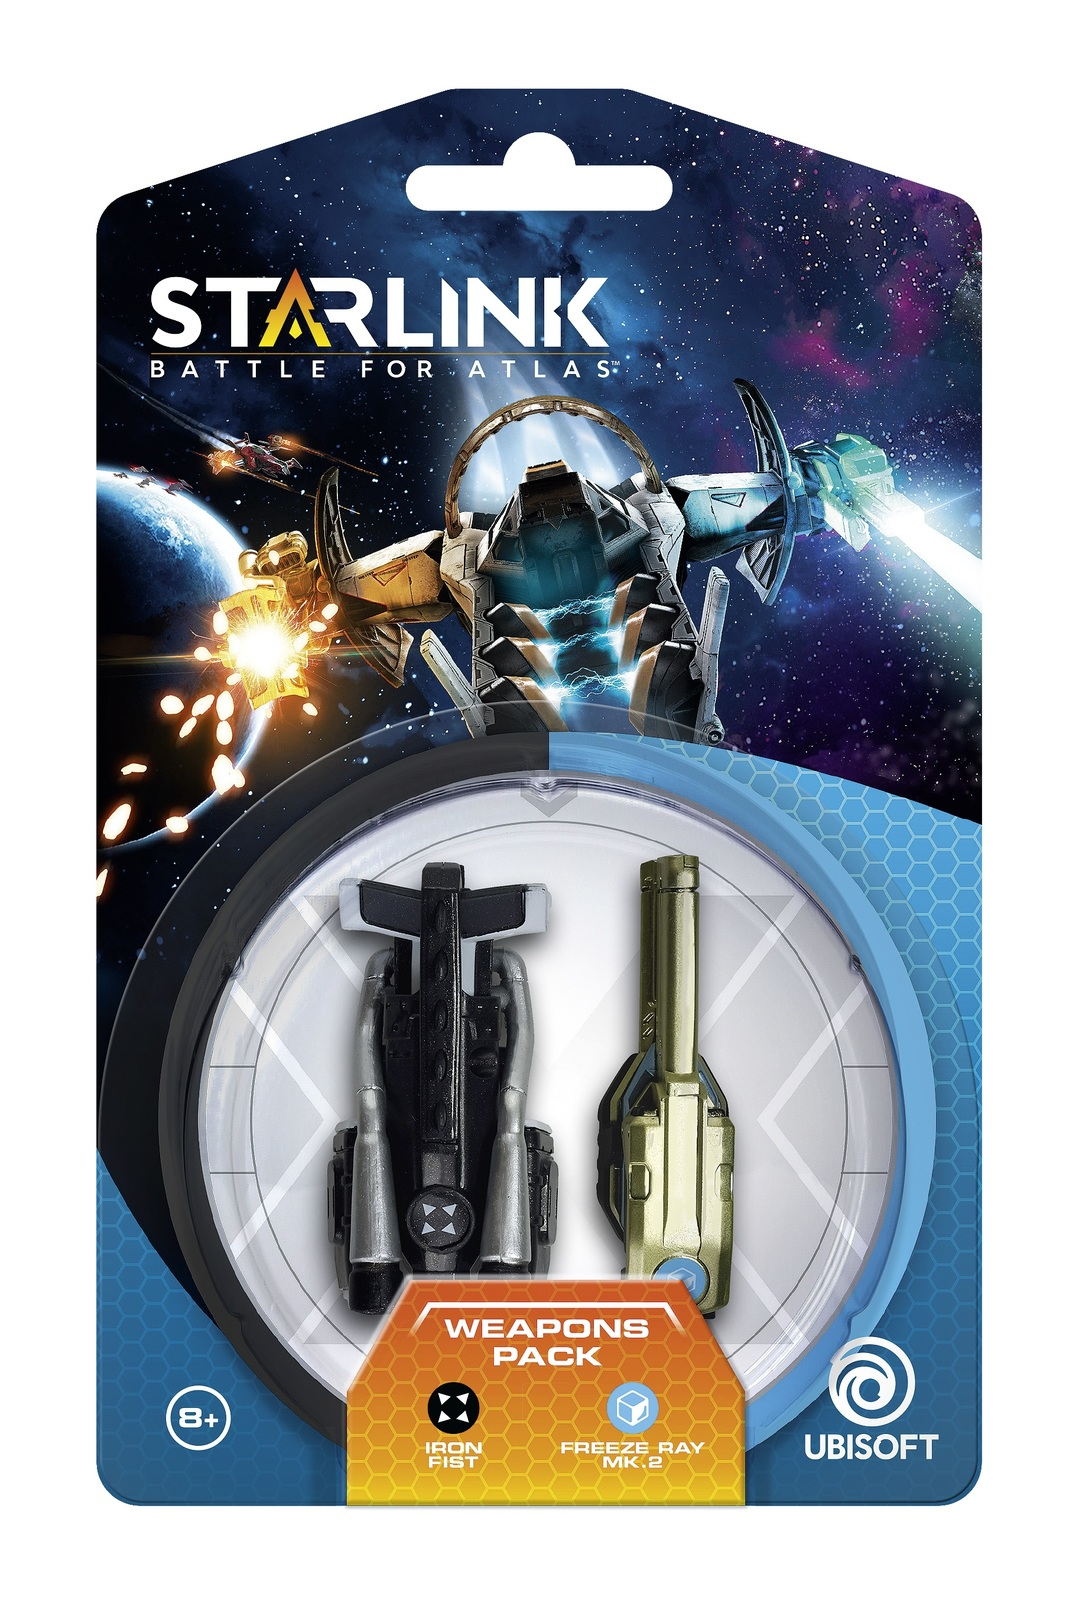 Starlink Weapon Pack - Iron Fist/Freeze Ray for  image